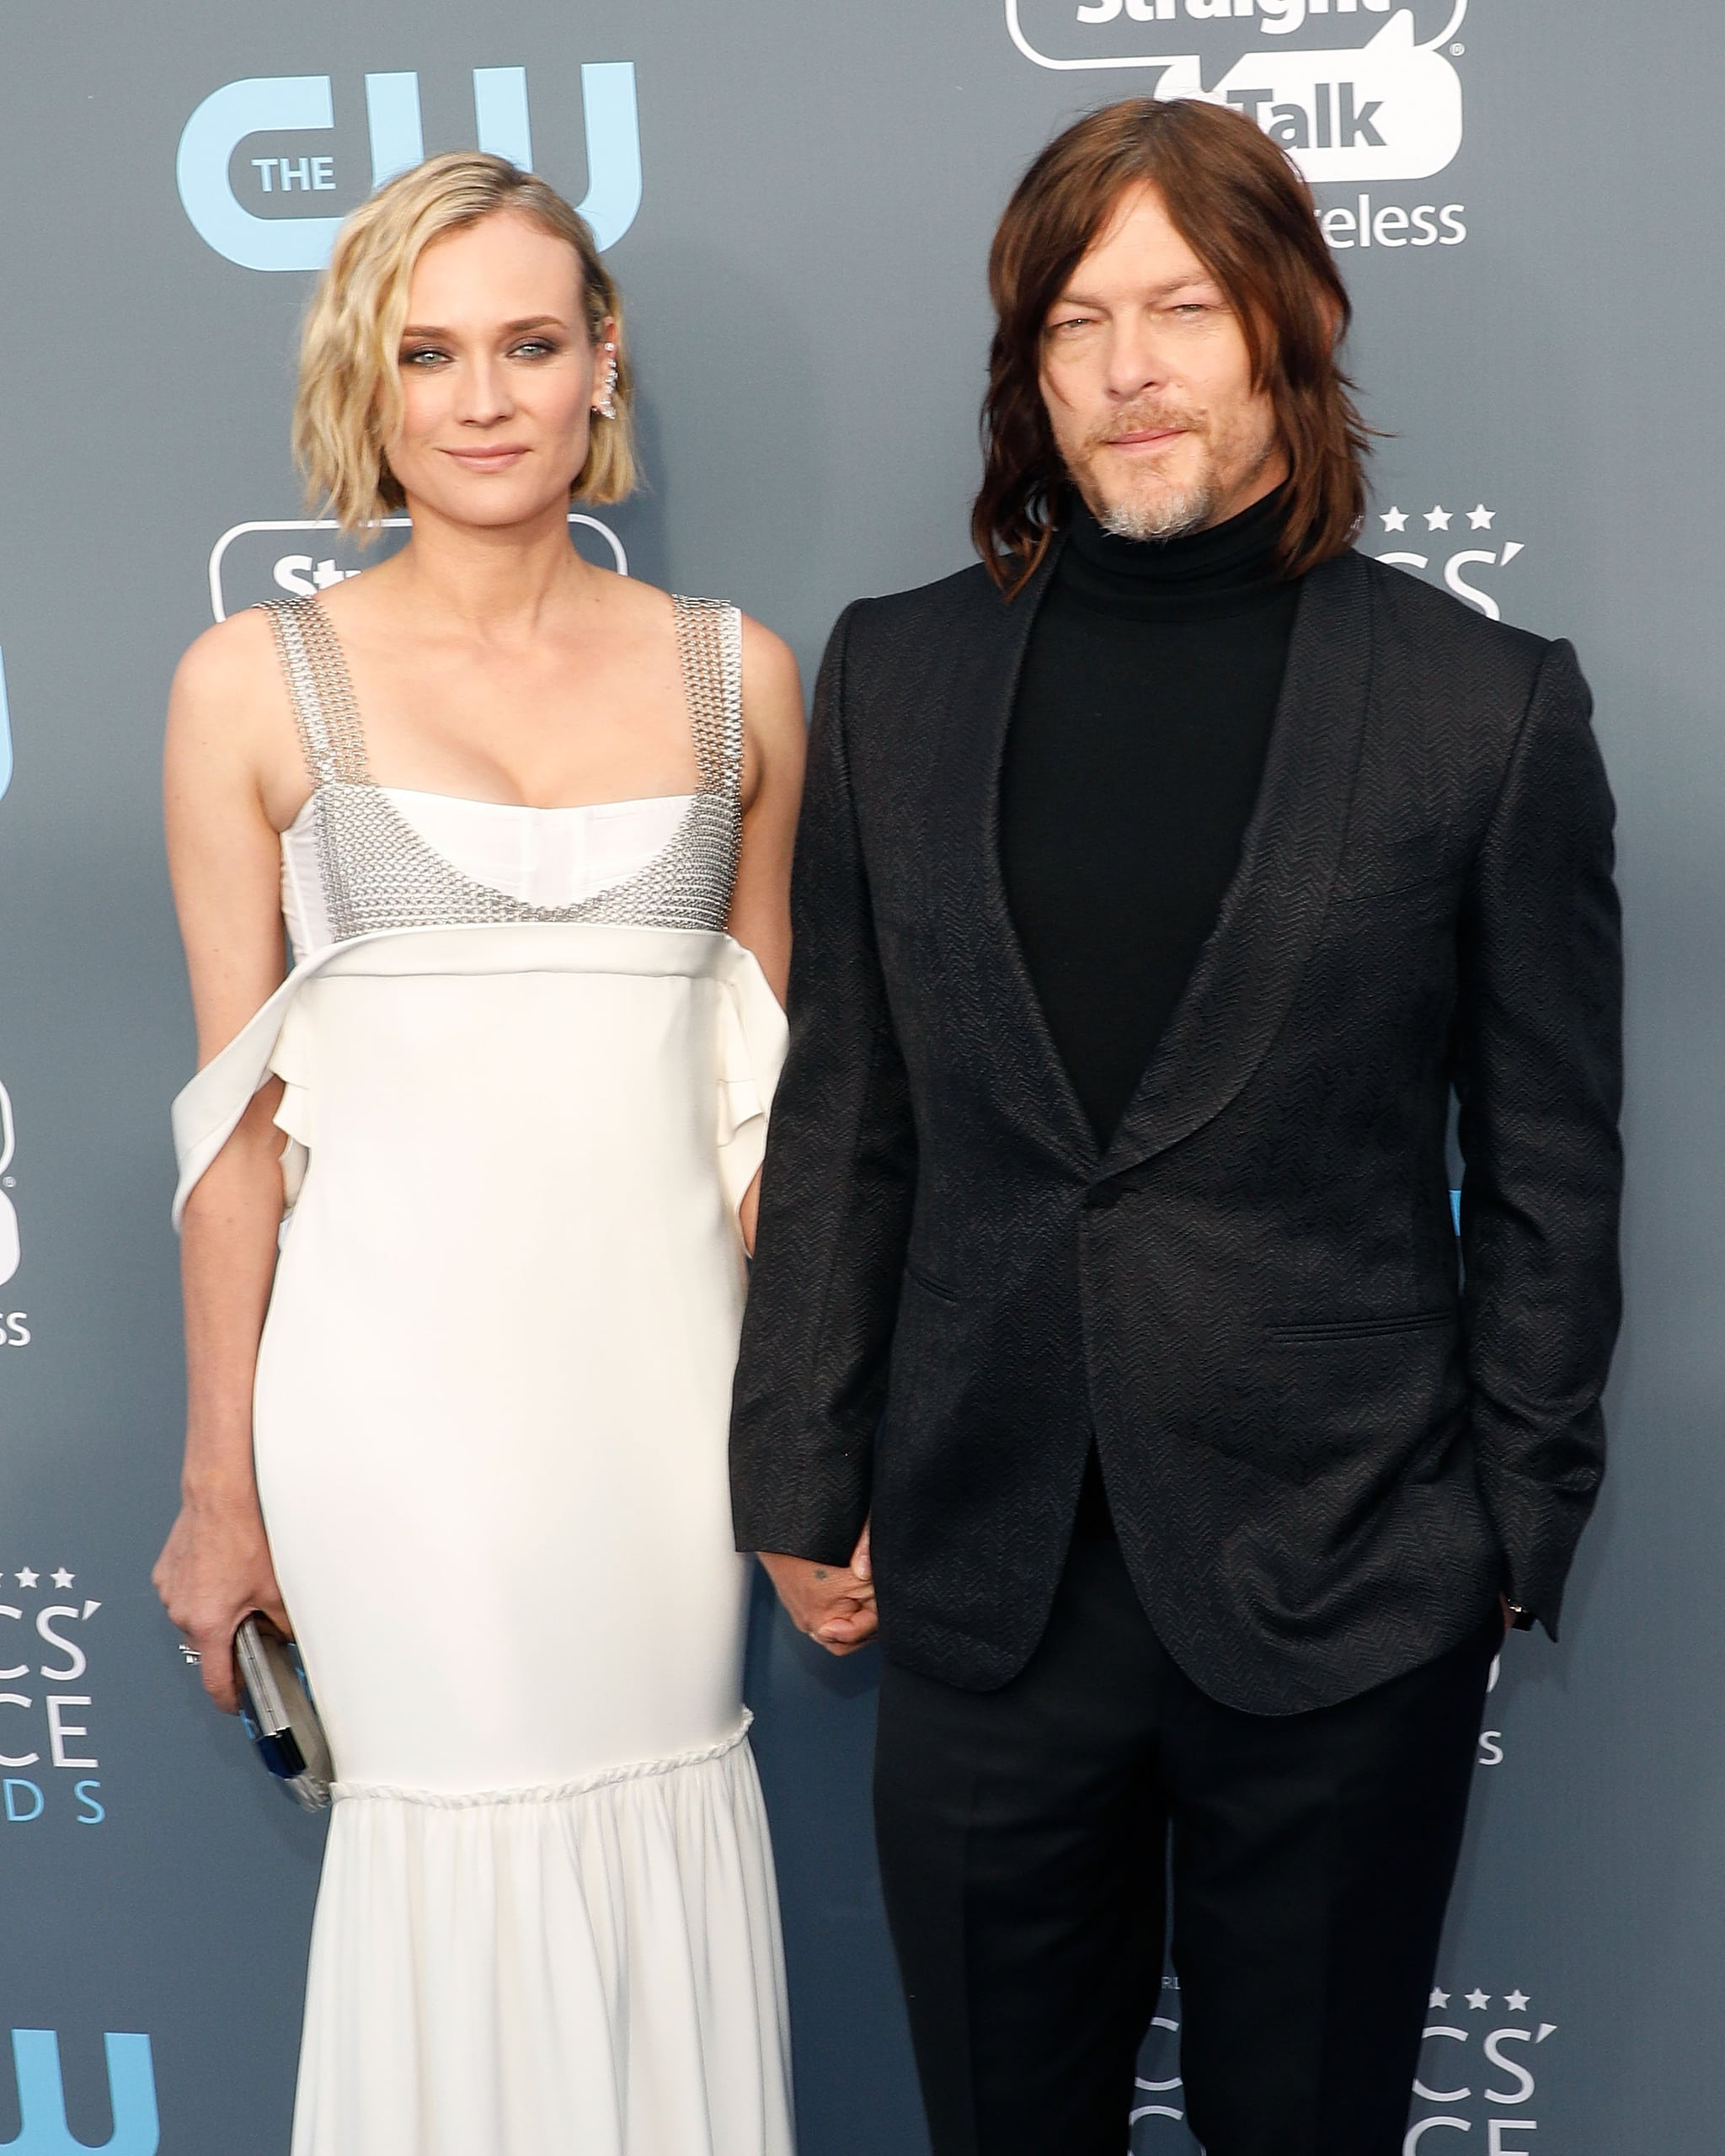 SANTA MONICA, CA - JANUARY 11:  Diane Kruger and Norman Reedus attend the 23rd Annual Critics' Choice Awards at Barker Hangar on January 11, 2018 in Santa Monica, California.  (Photo by Taylor Hill/Getty Images)